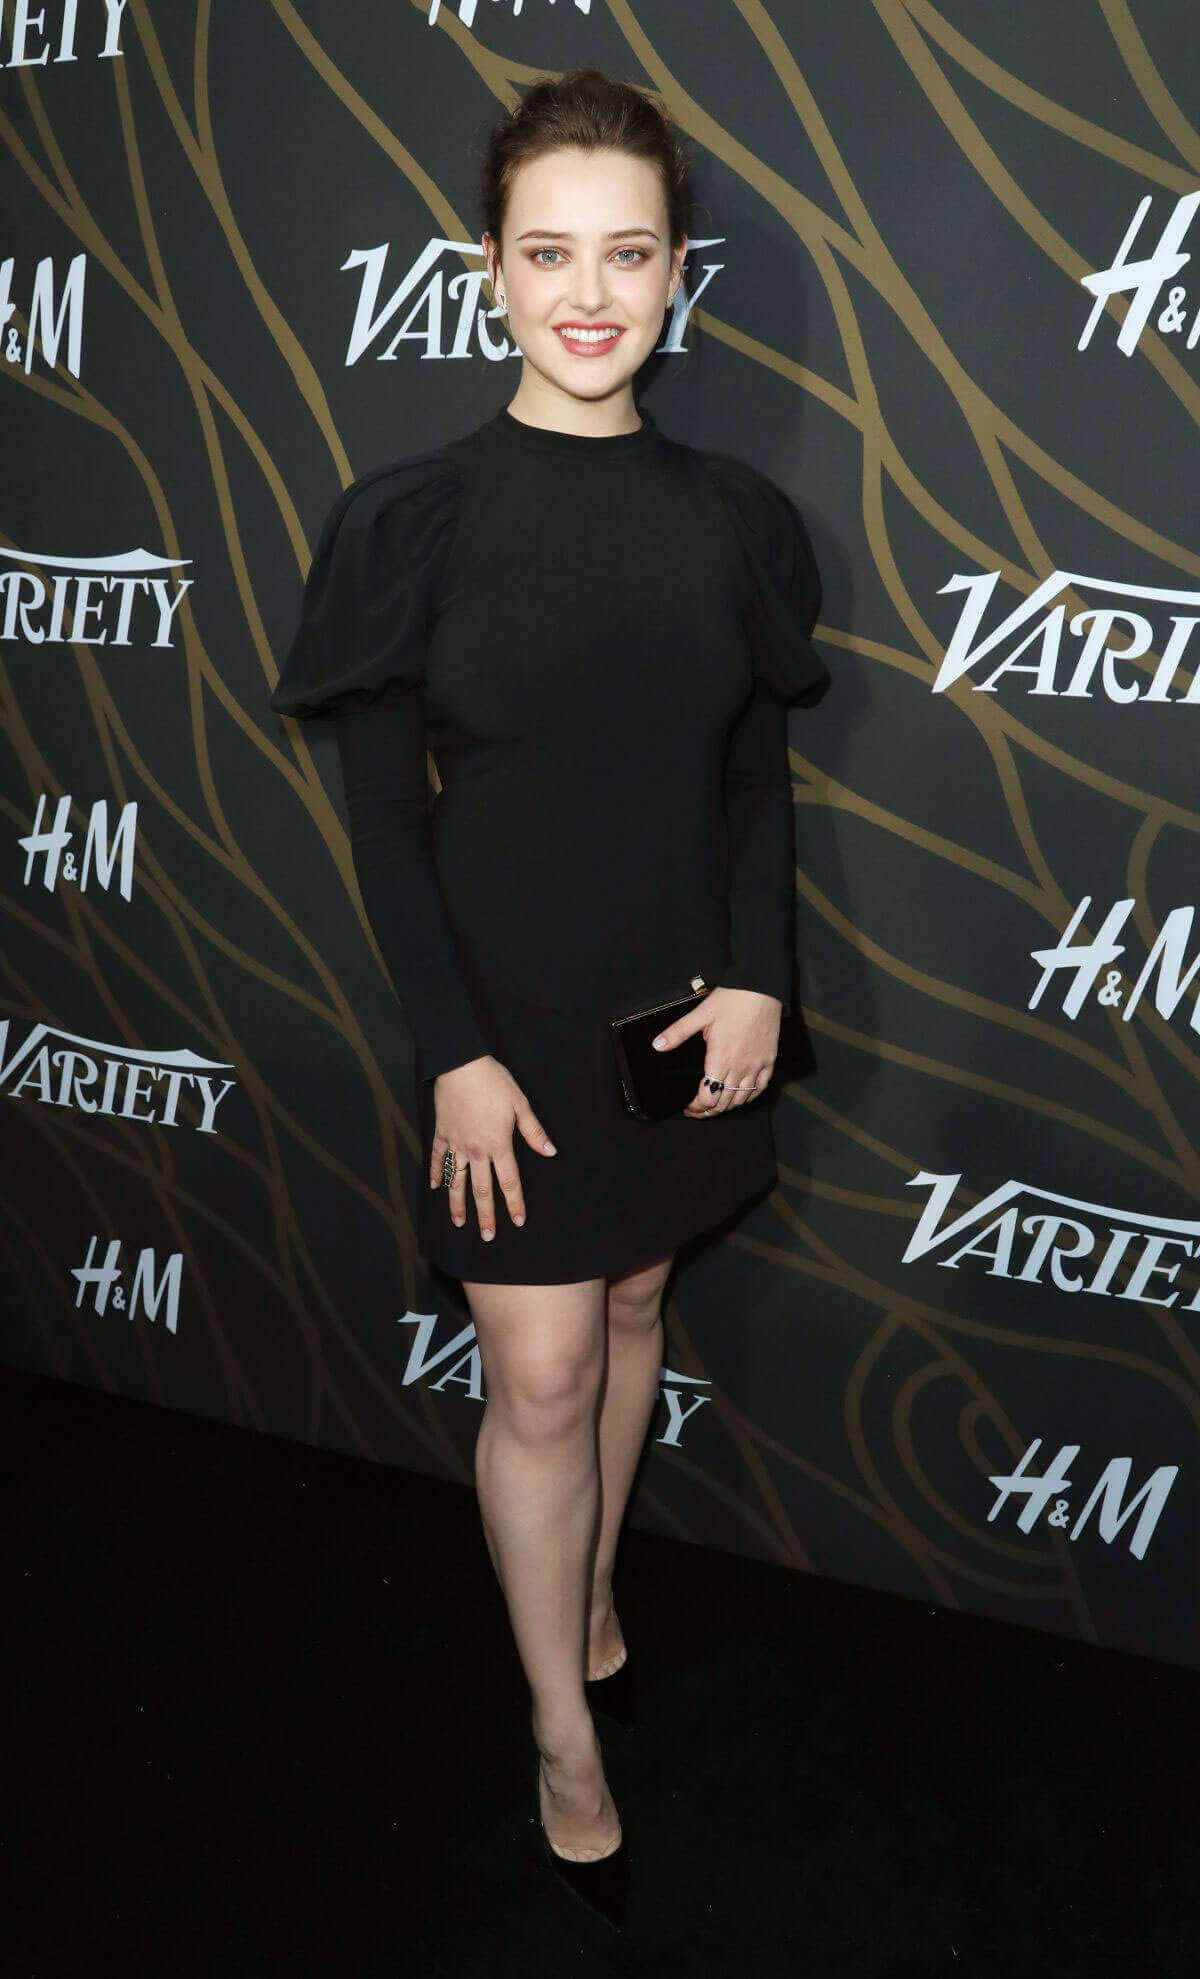 Katherine Langford Stills at Variety Power of Young Hollywood in Los Angeles